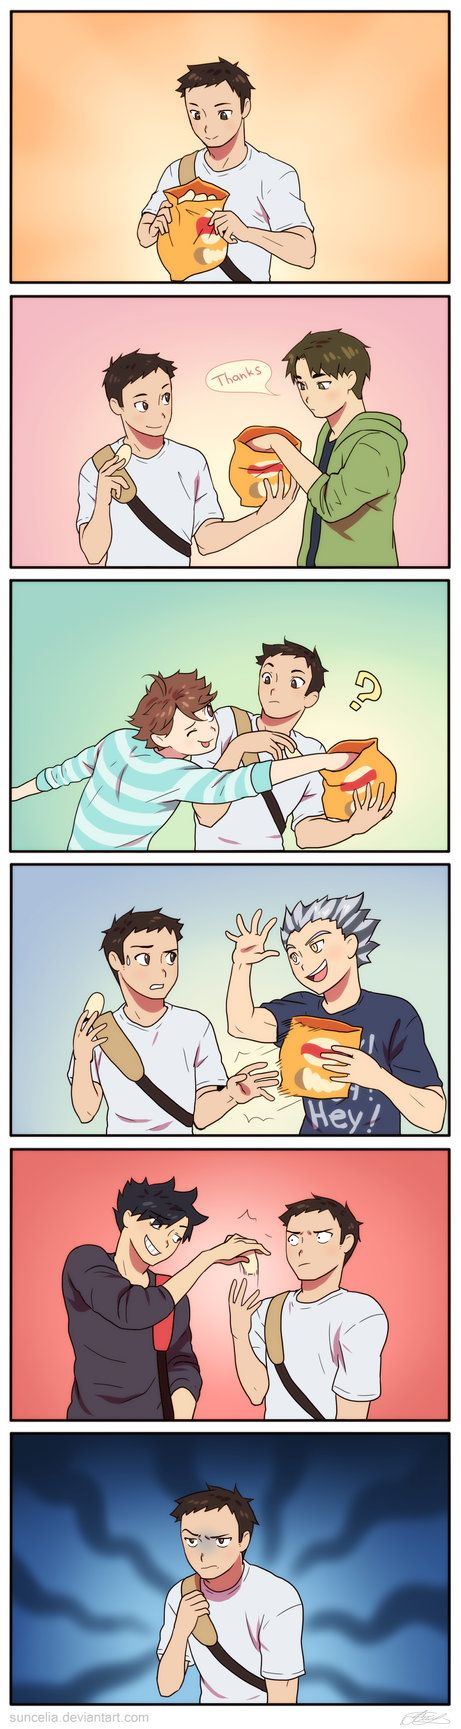 And that's when Daichi became official dad of everyone...